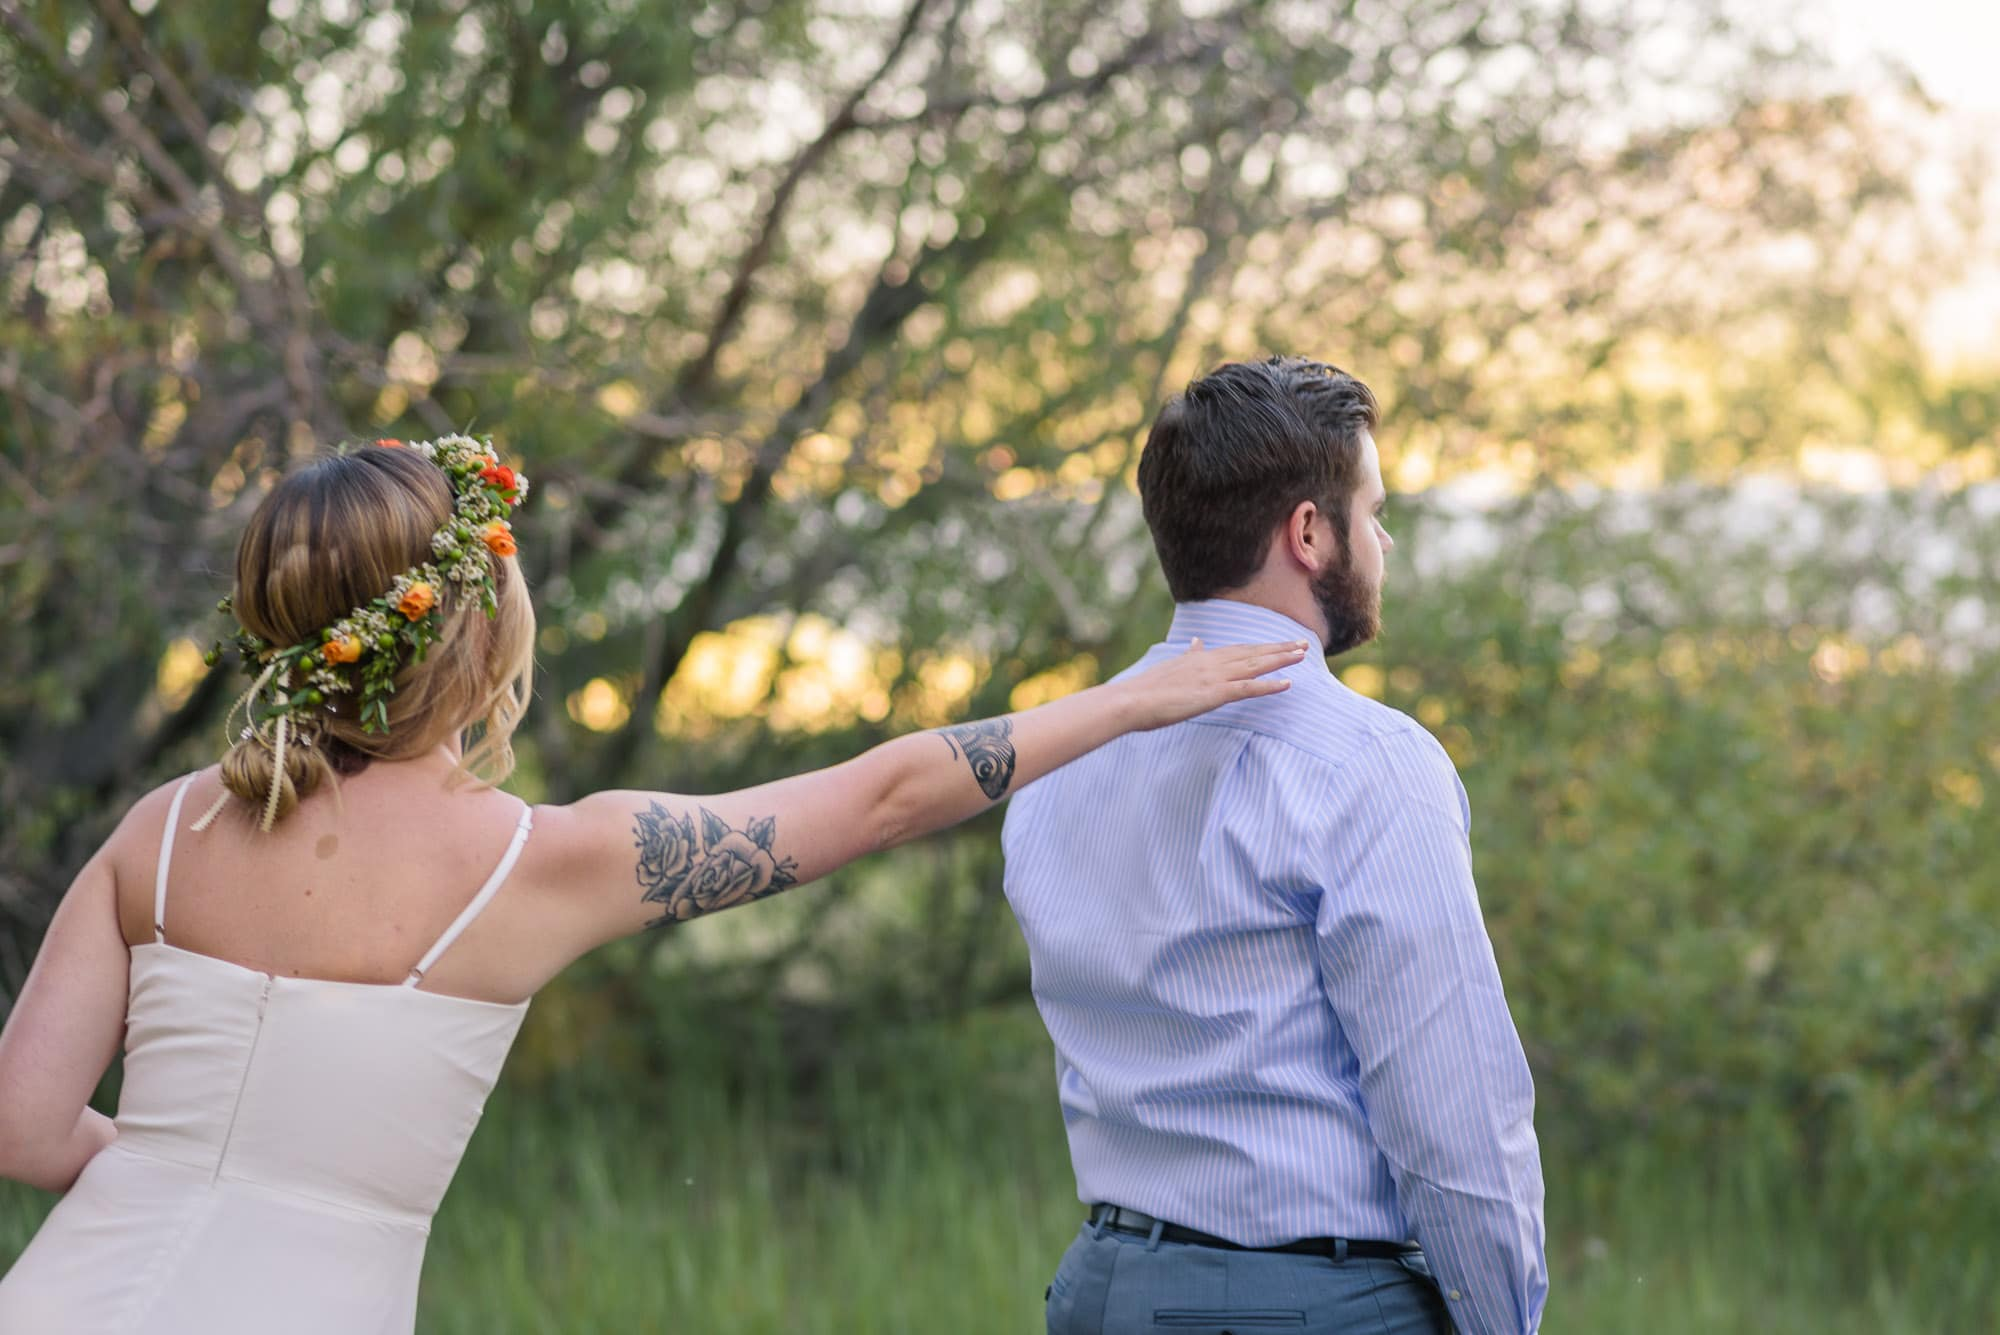 004_Alan_and_Heidi_Kensey_Josh_Big_Bear_Elopement